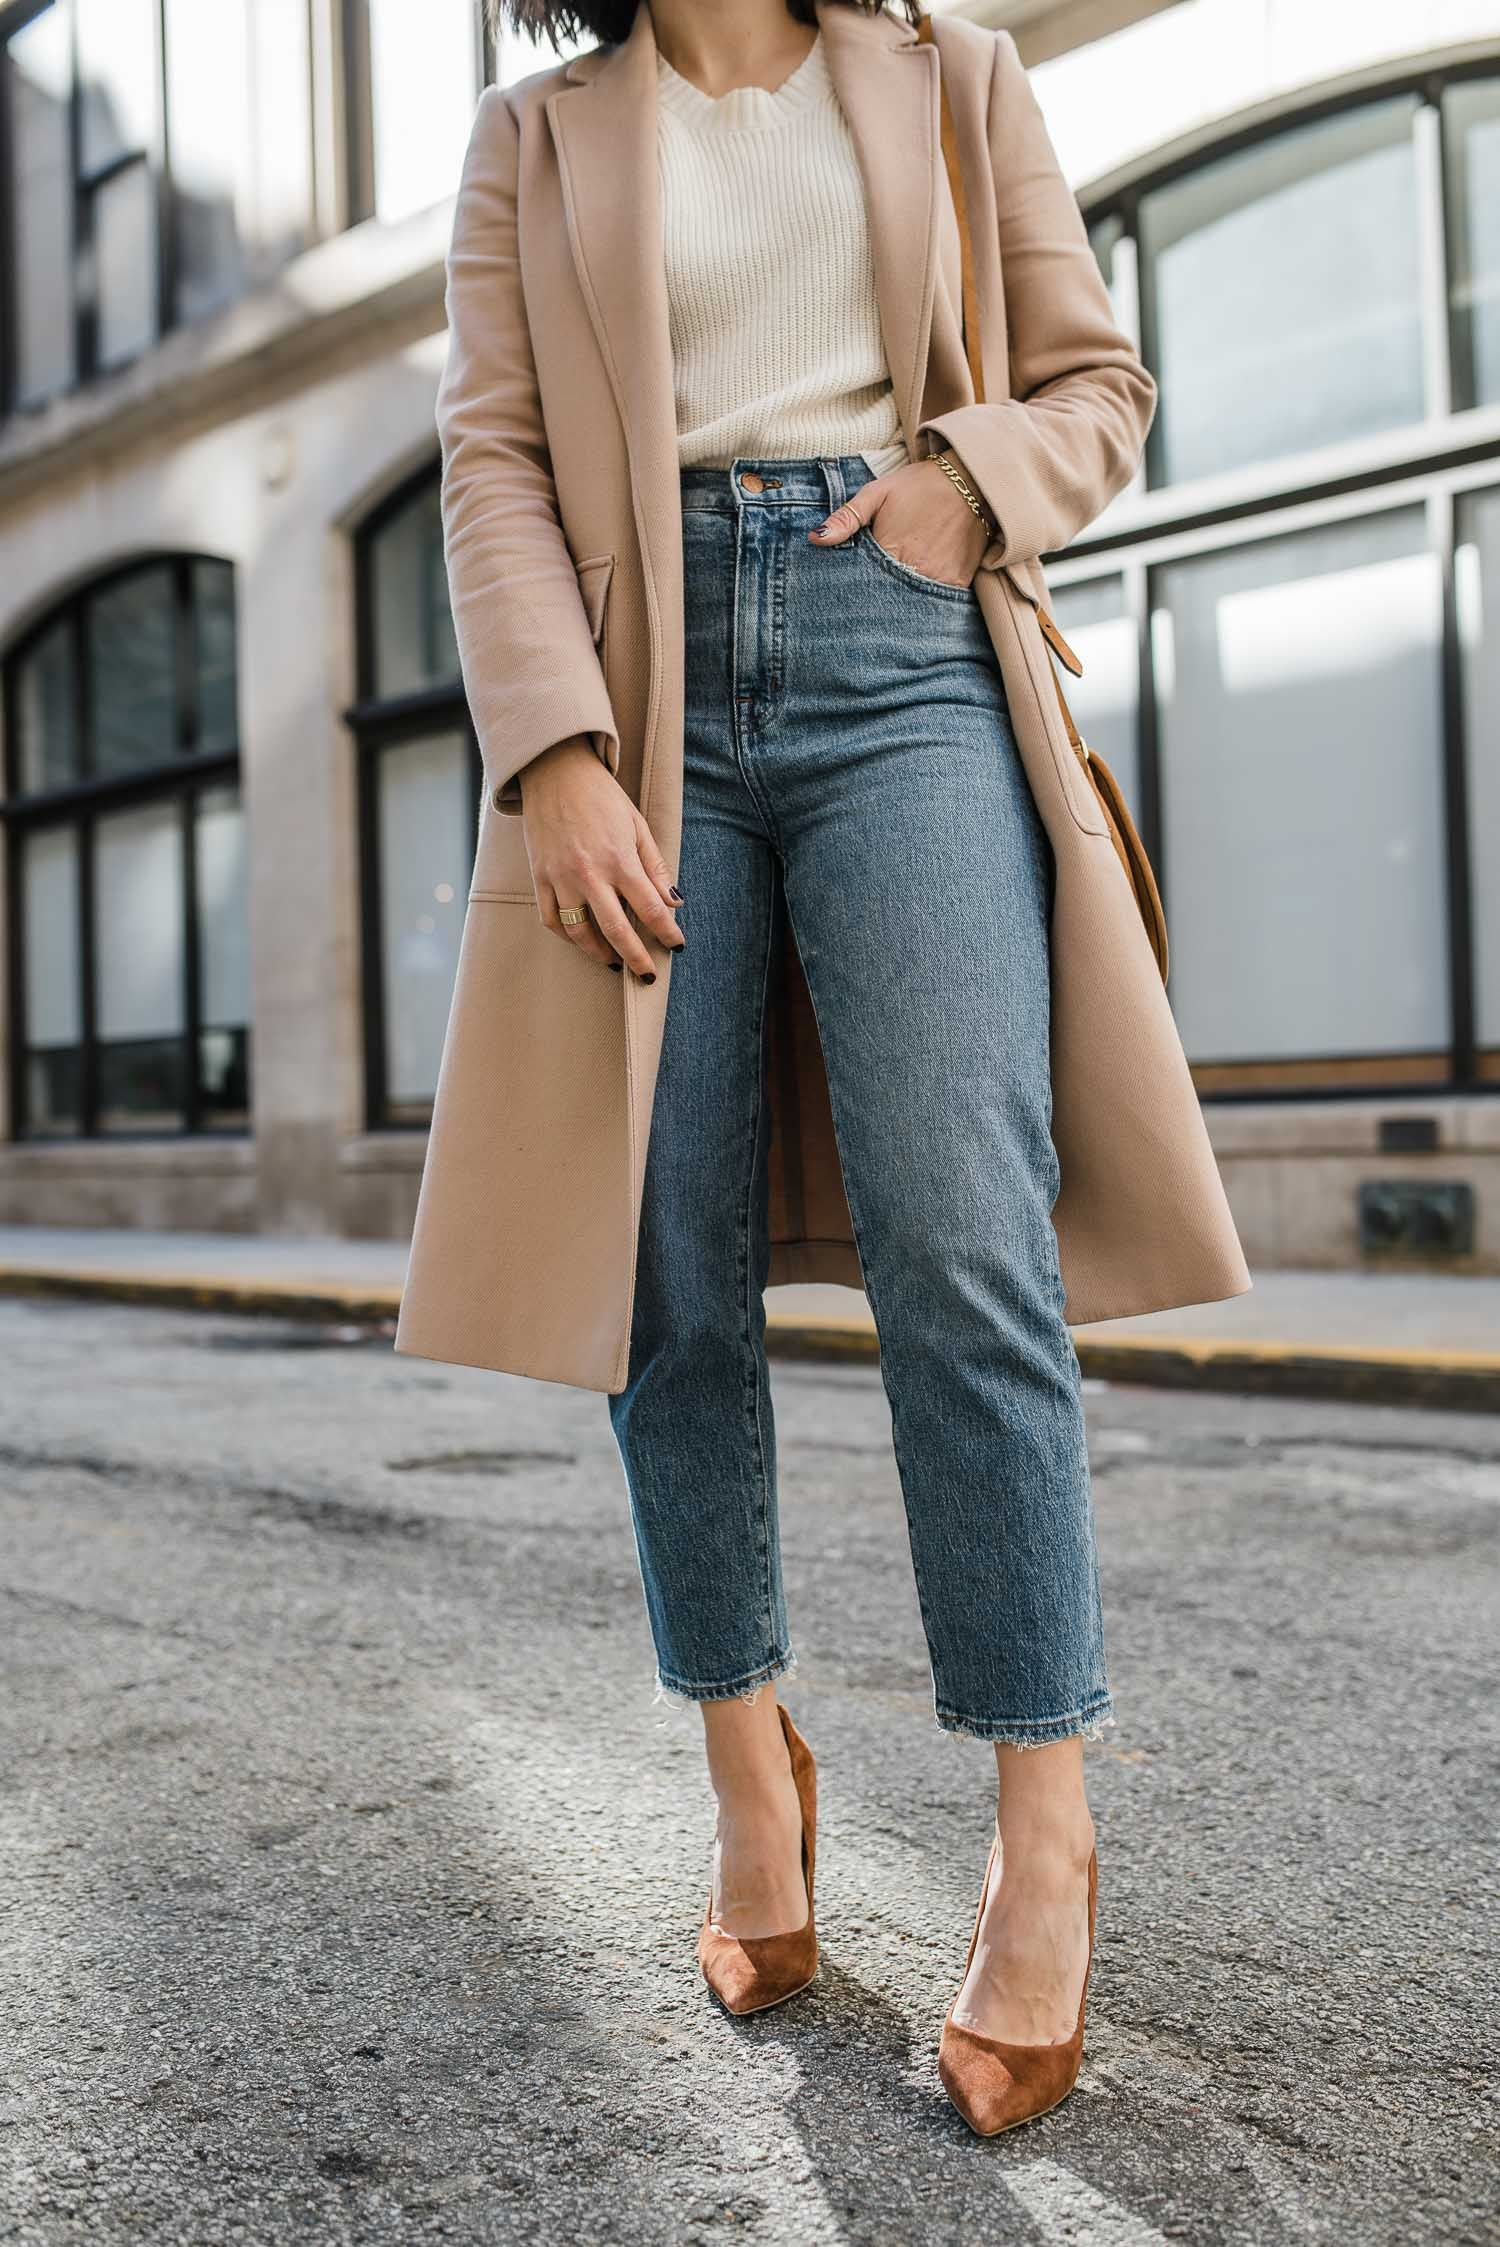 Neutral outfit ideas for winter, how to style camel coats. #camelcoat #fashion #ootd